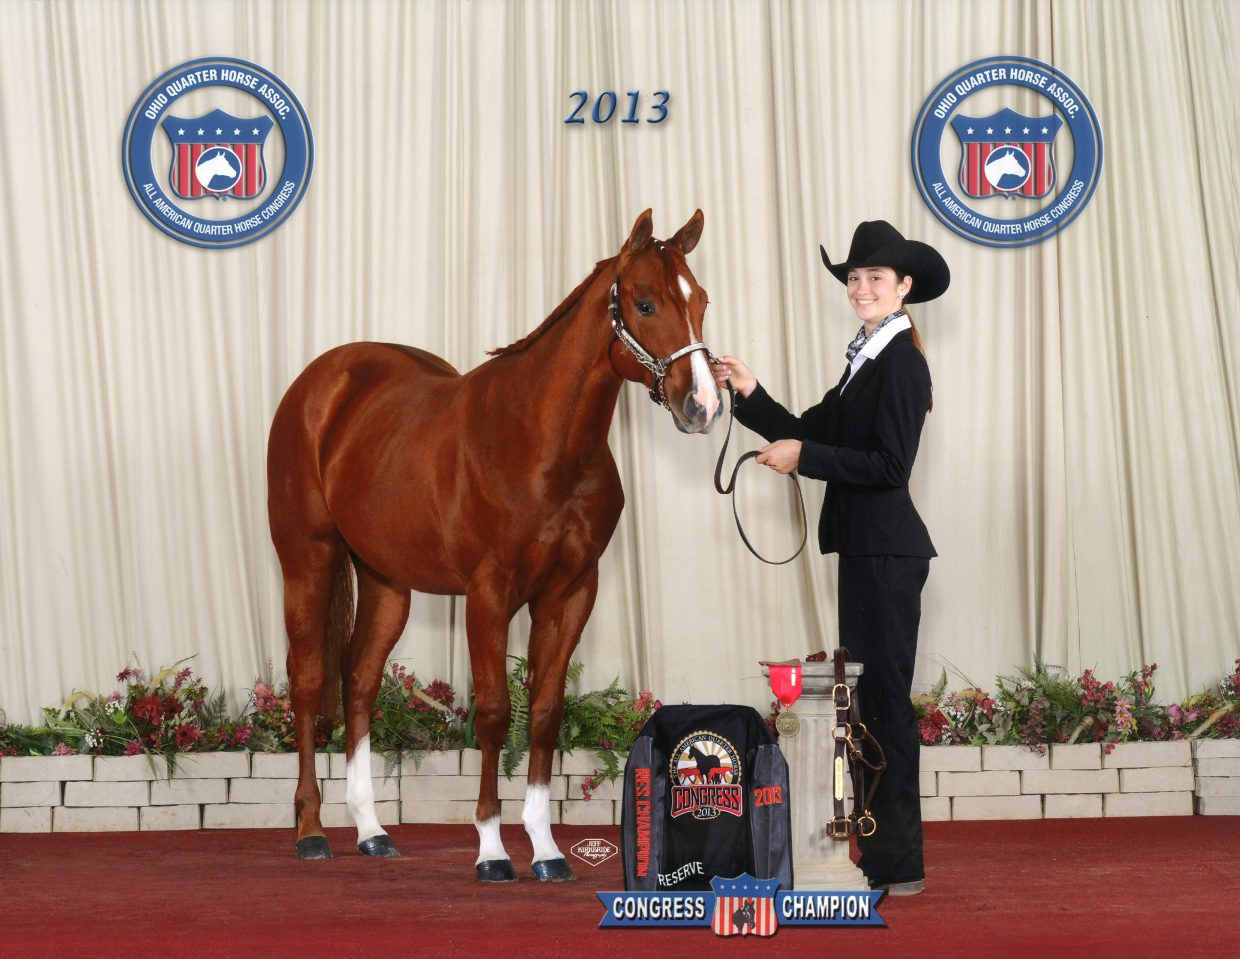 The Suttons donated this mare — RWS Color Me Intrigued — to the Ranching Heritage Young Horse Development Program. She was Reserve Youth Yearling Mare at the 2013 Quarter Horse Congress.